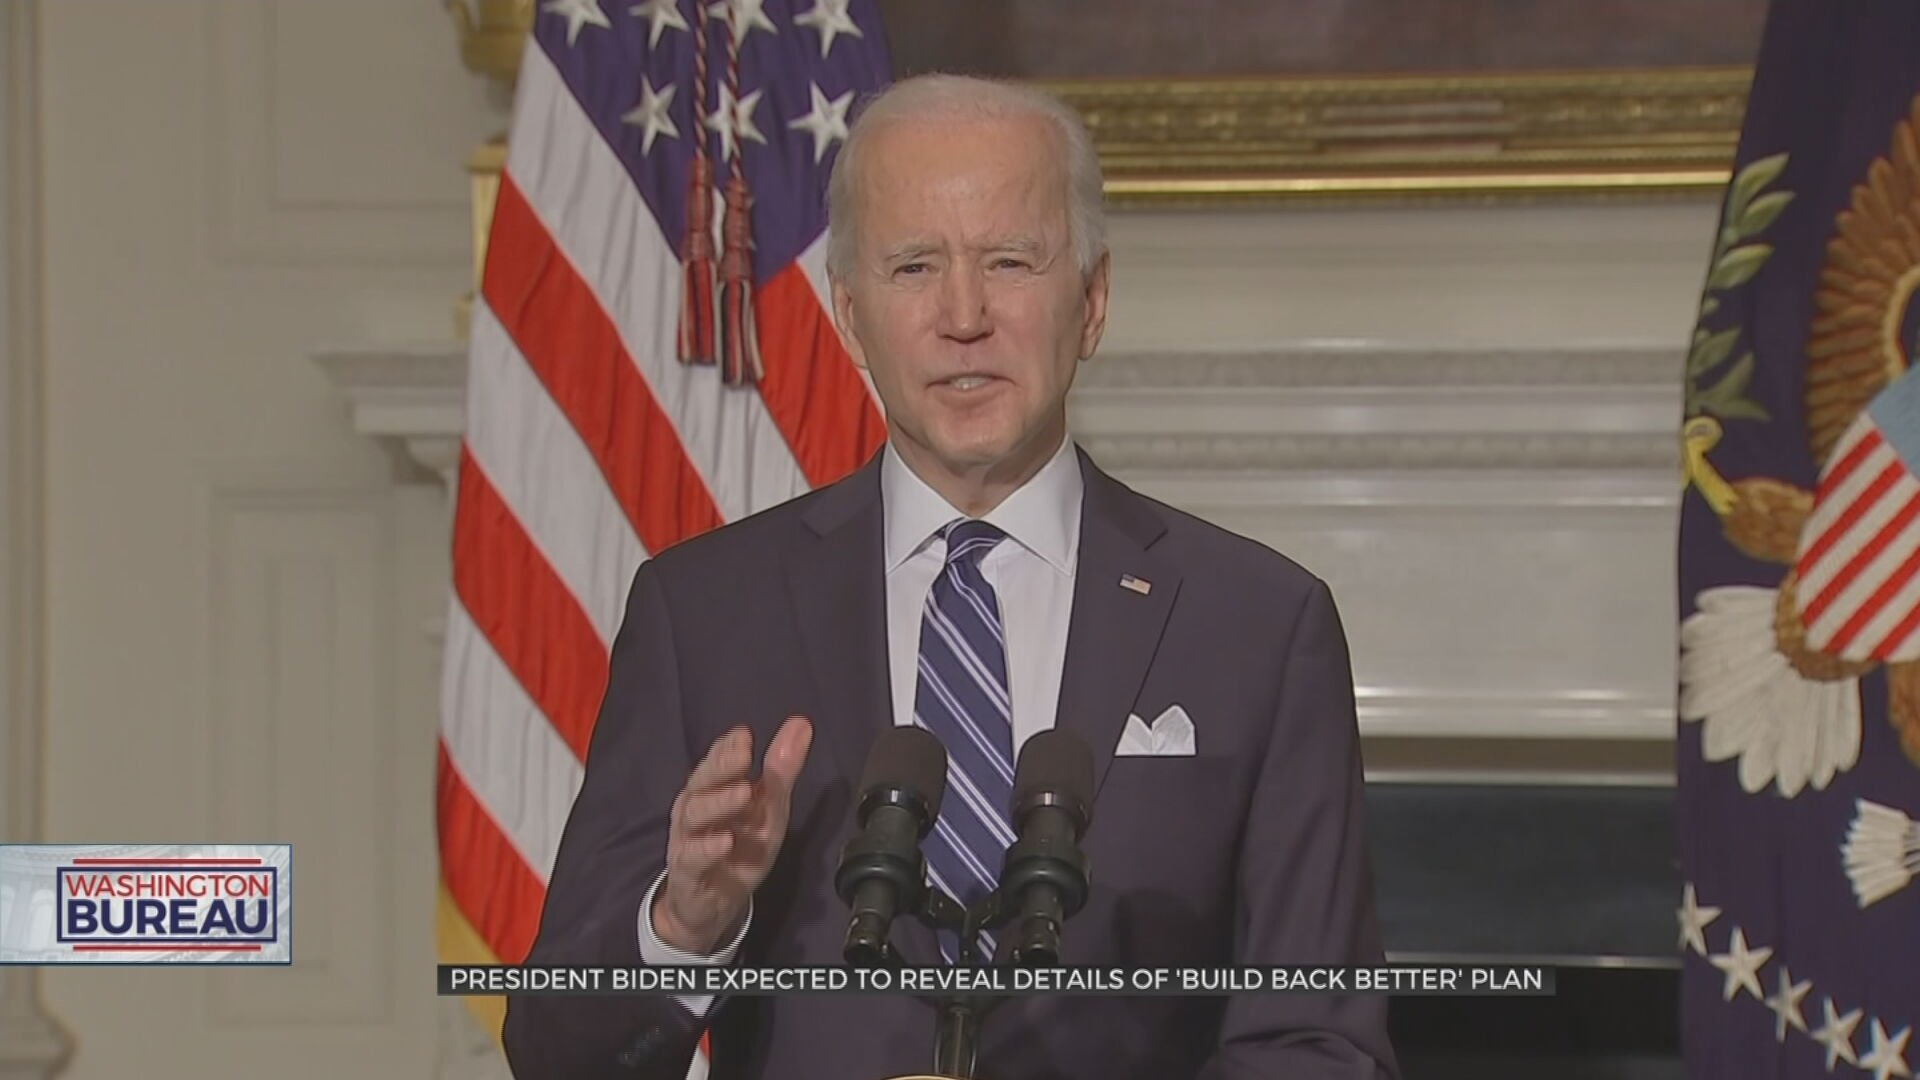 President Biden Expected To Reveal Details Of 'Build Back Better' Infrastructure Plan